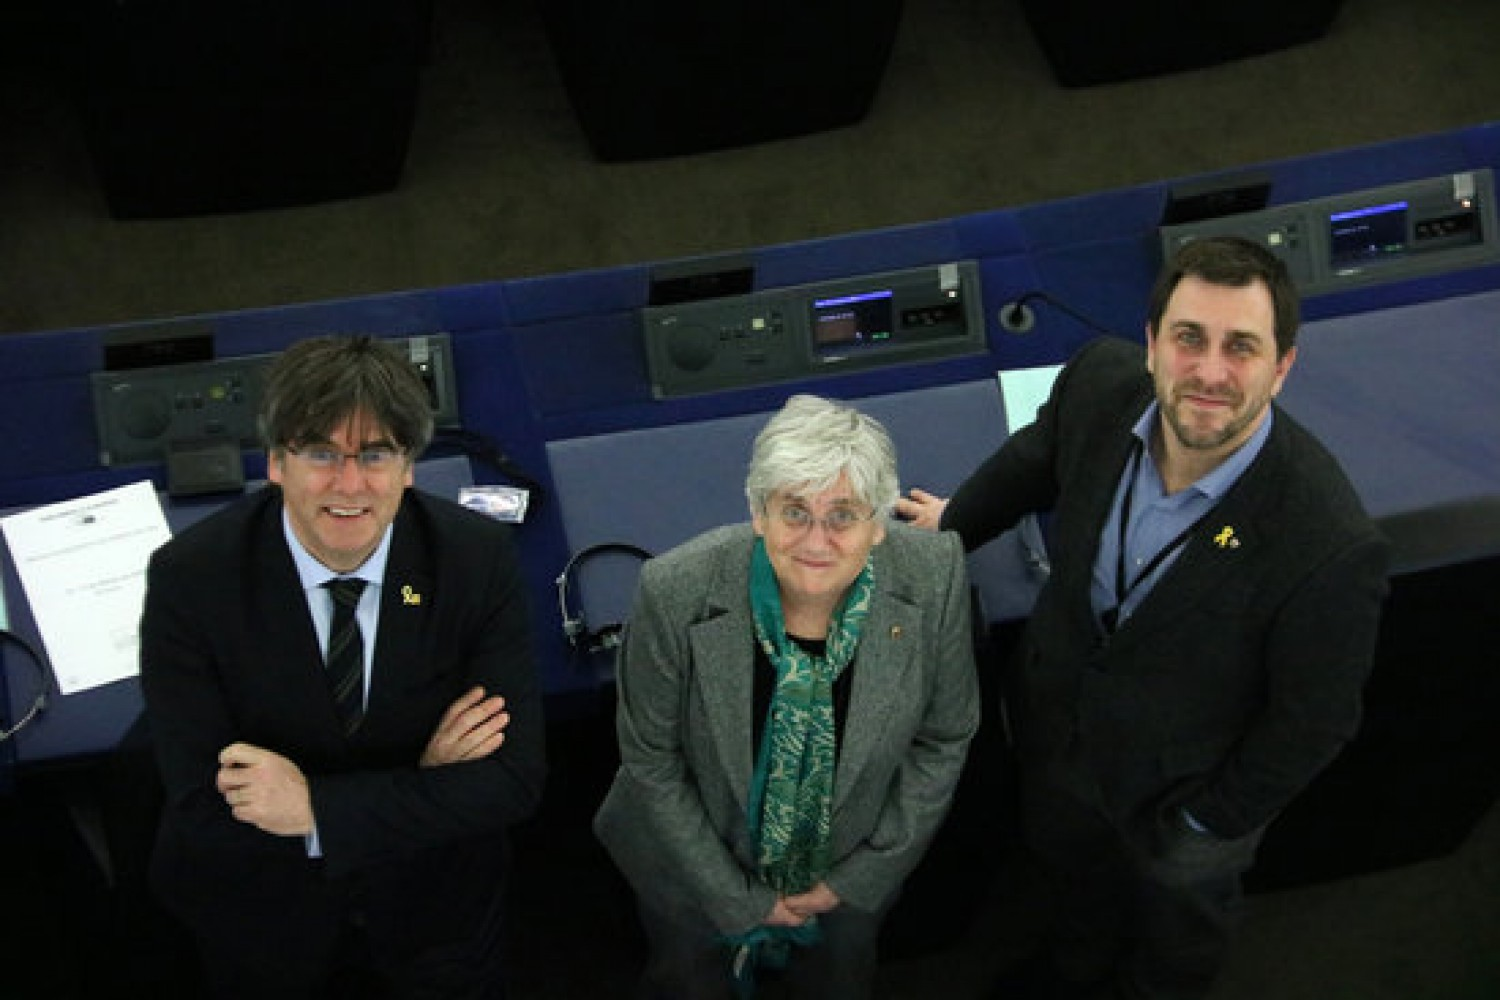 MEPs Toni Comín, Clara Ponsatí and Carles Puigdemont at the European parliament in Strasbourg, February 20, 2020 (by Natàlia Segura)